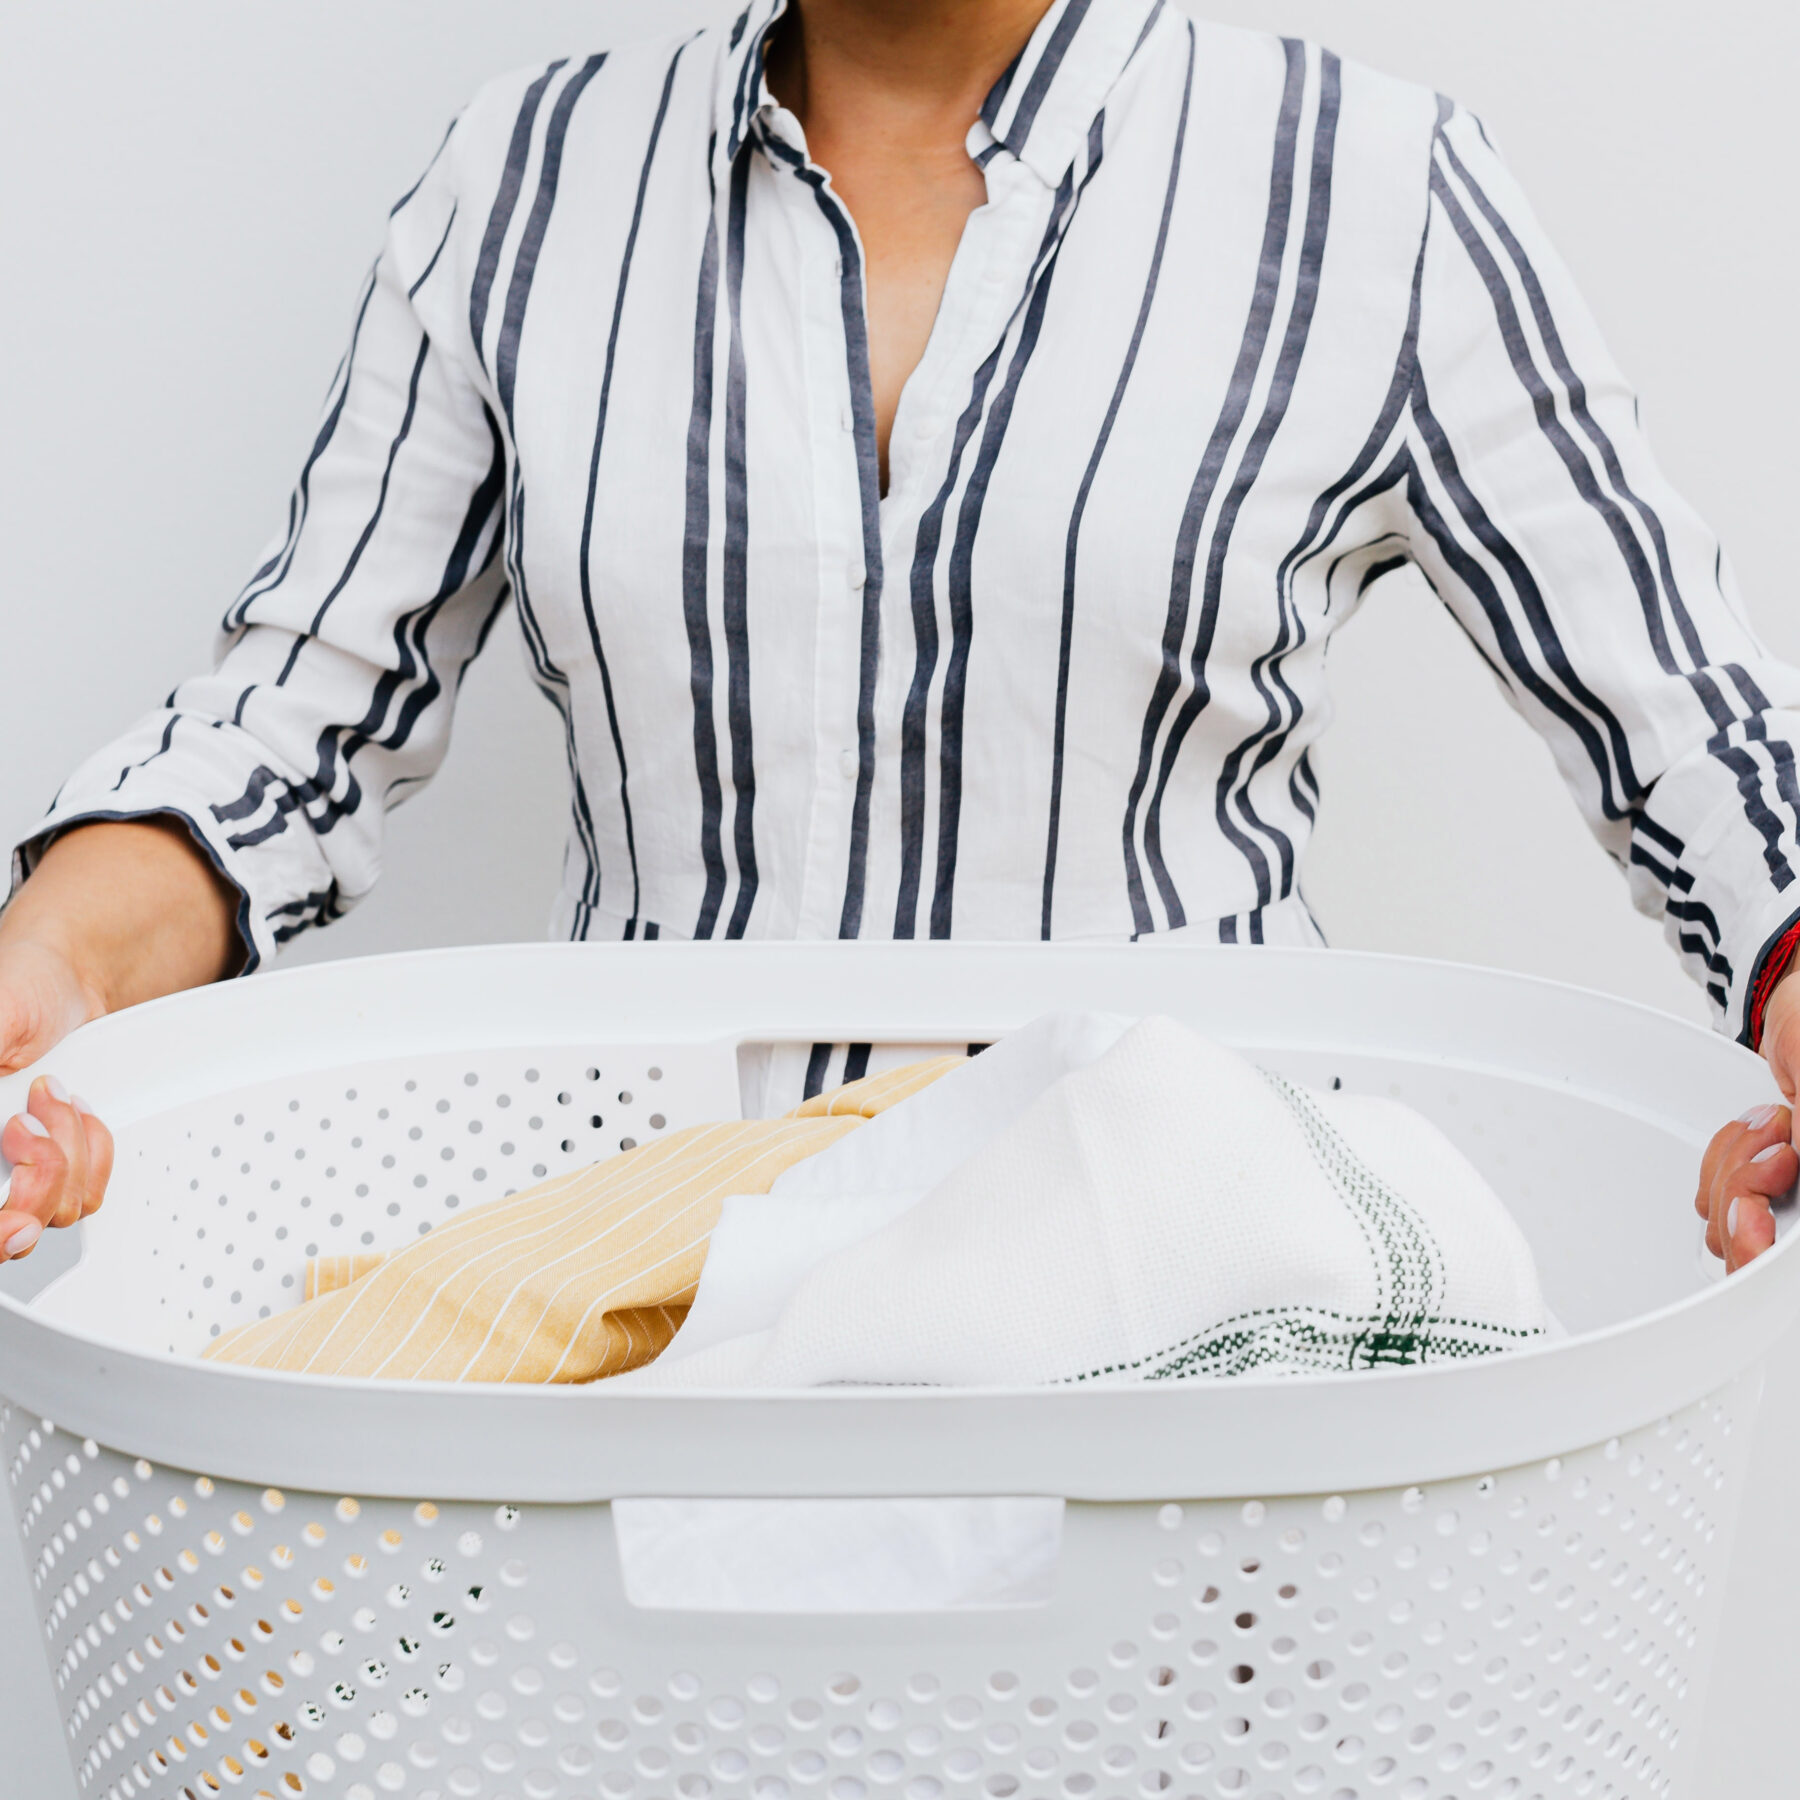 Someone in a white and blue striped shirt holding a white laundry basket